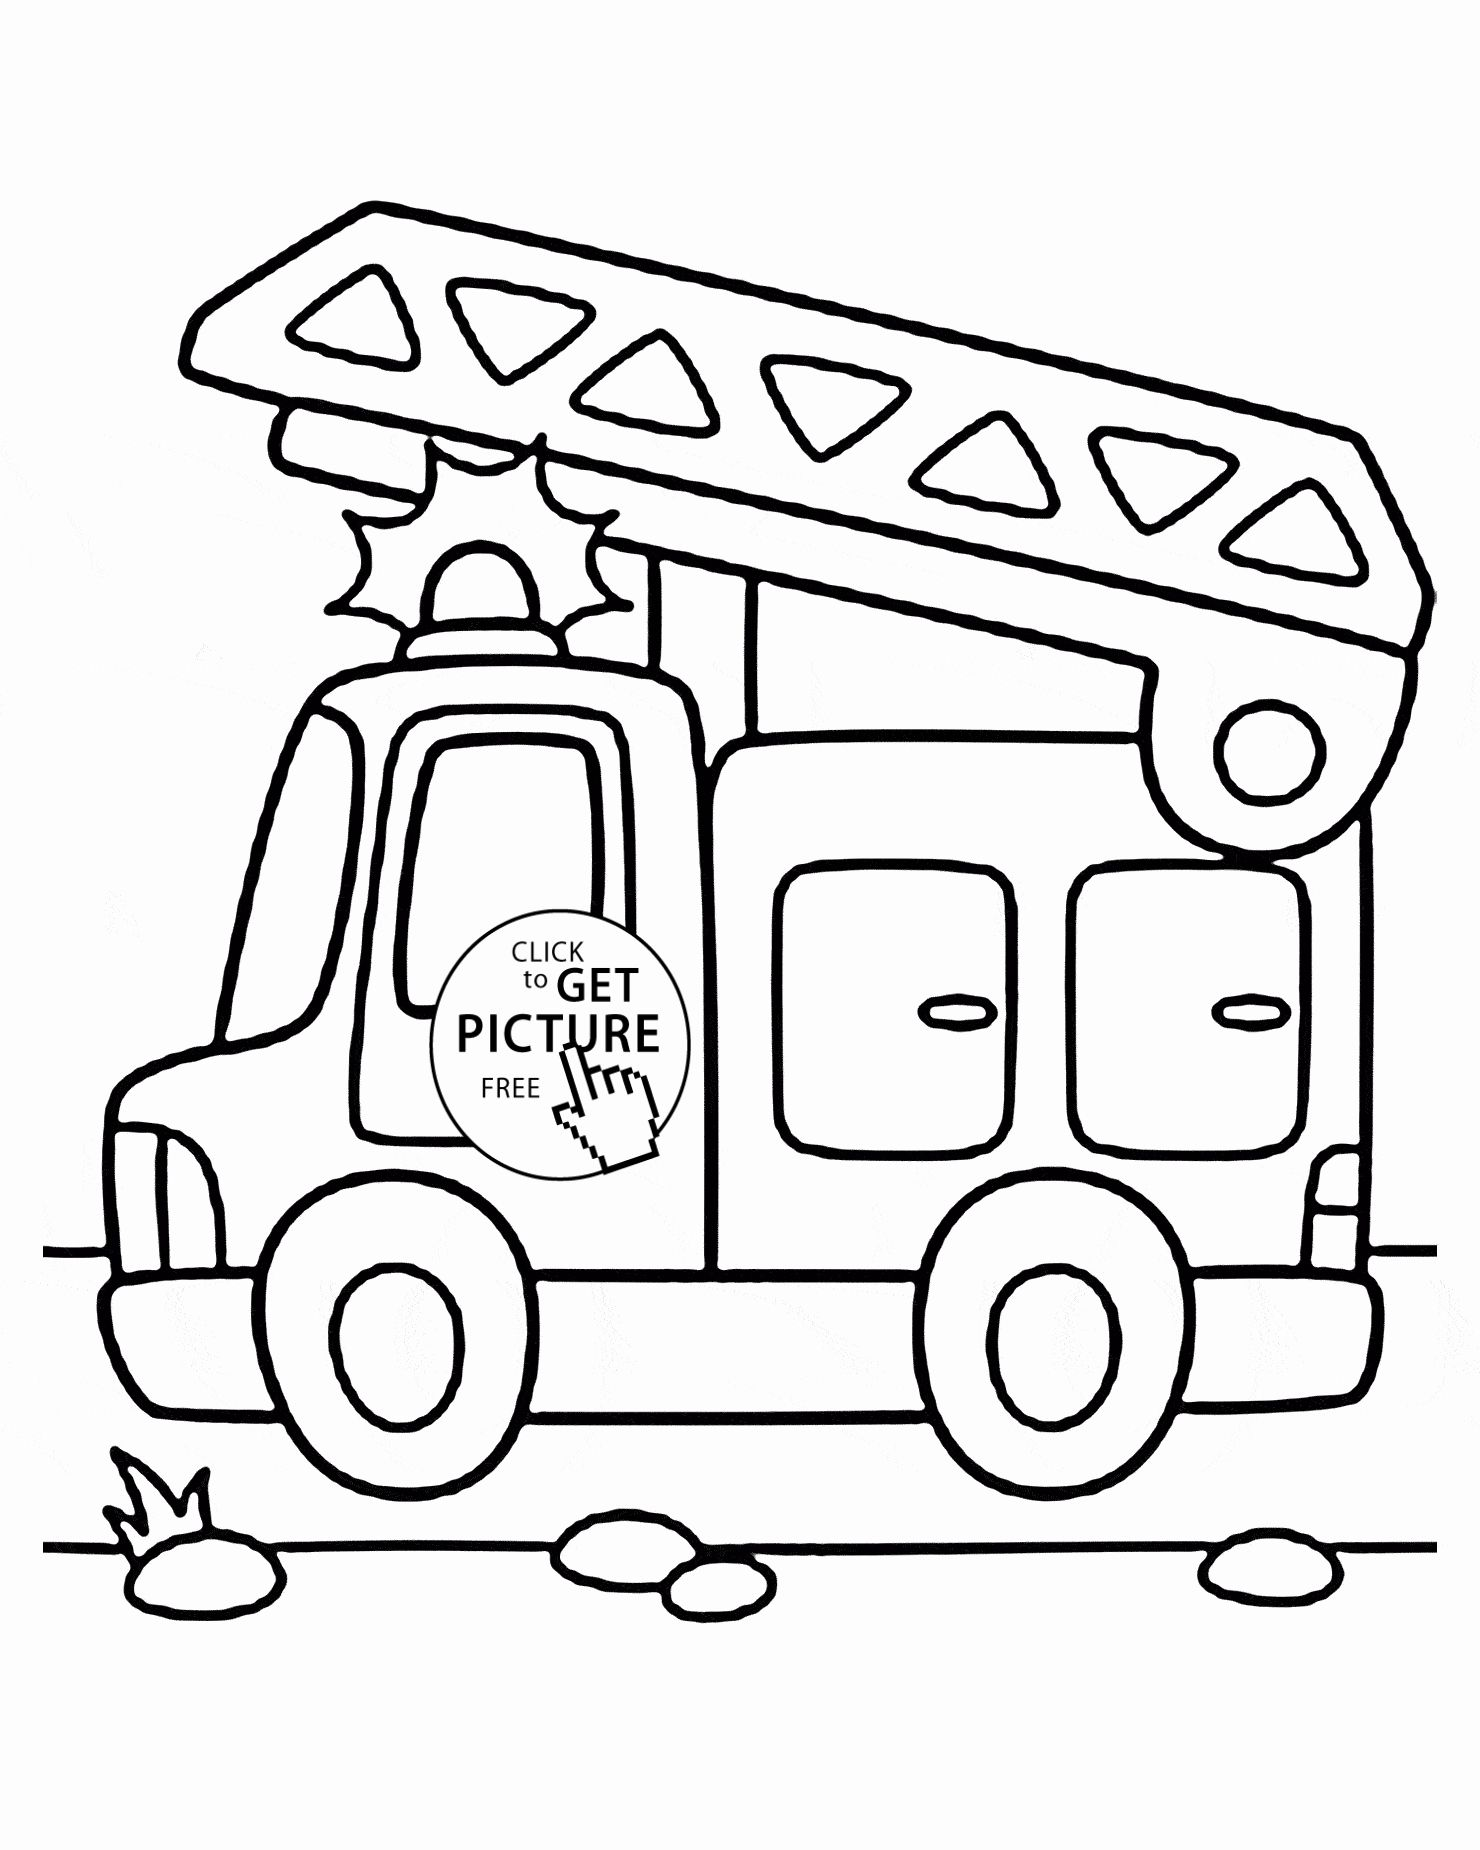 Transportation Coloring Pages For Preschoolers Brandweerwagen